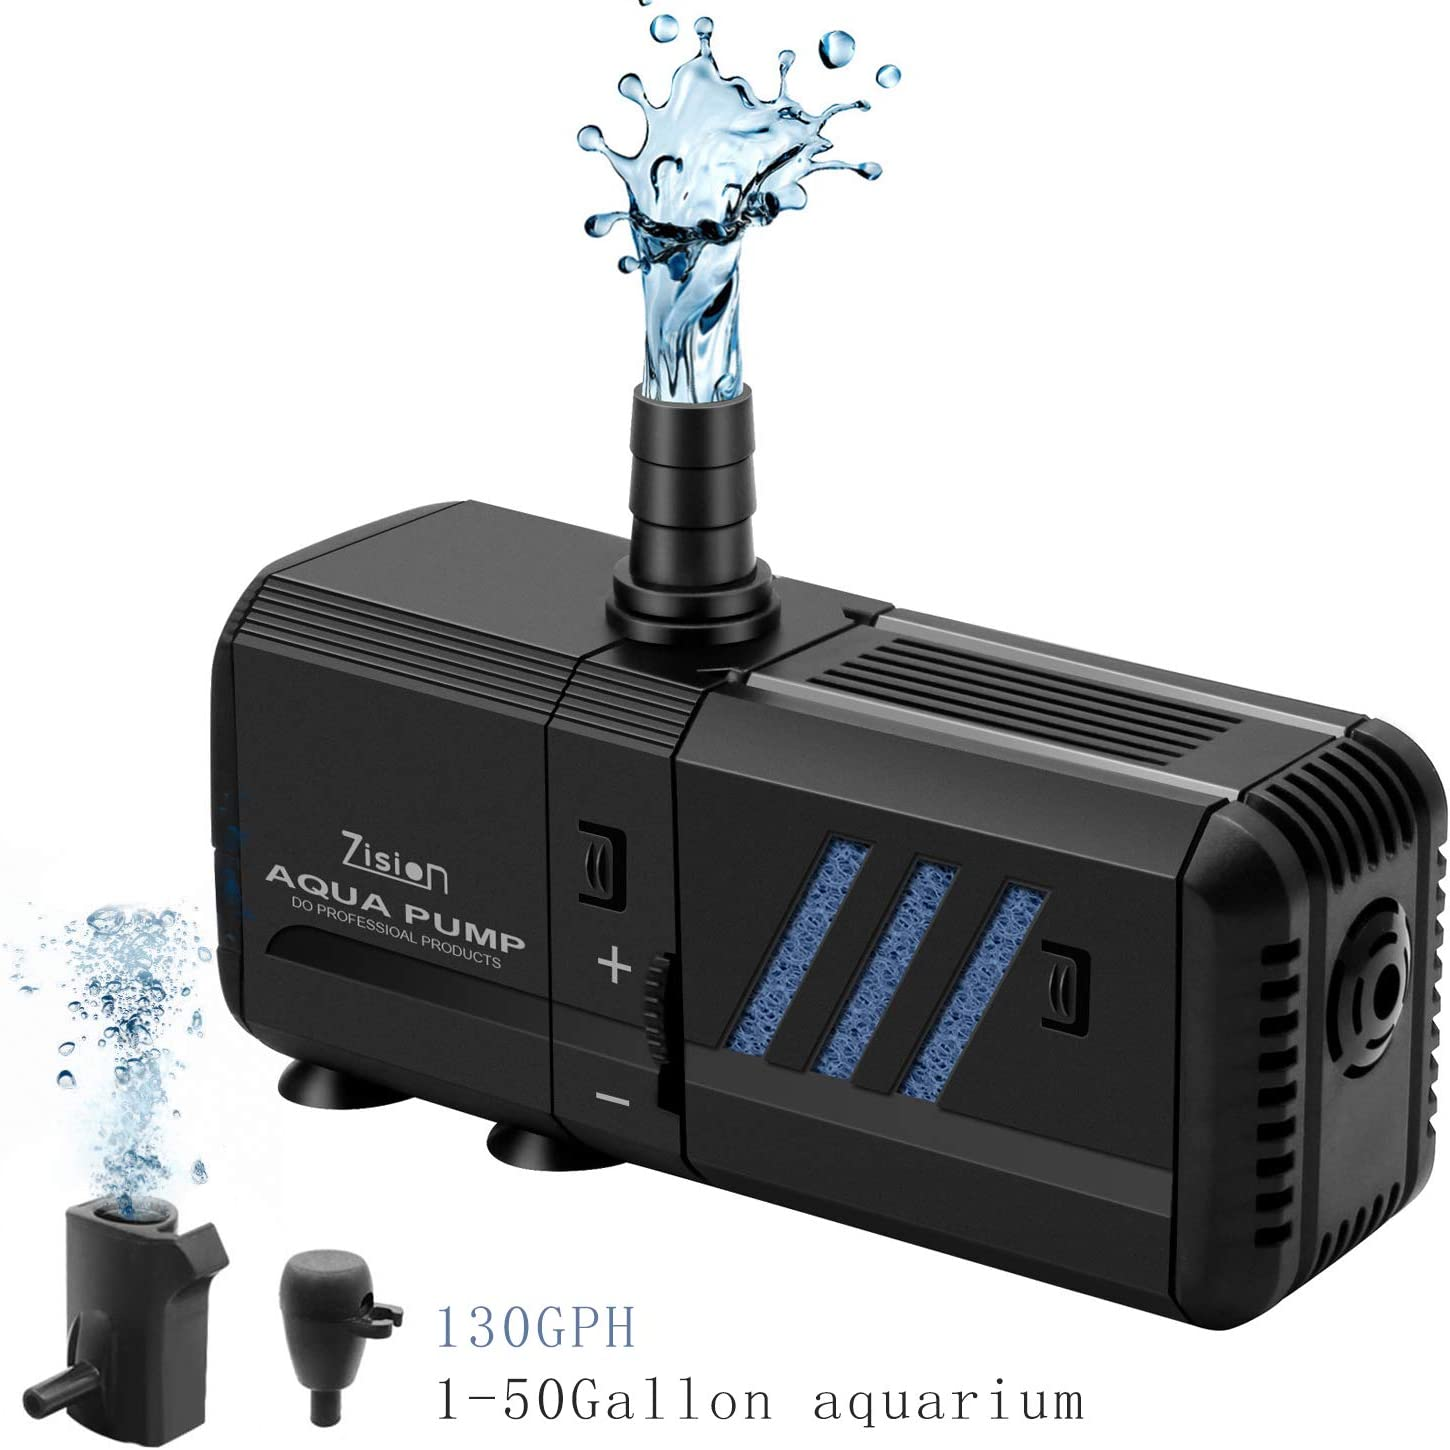 Fish Tank Filter, Water Pump (6W-500L/H) Super Quiet, Home/Office Aquarium Air Bubble Water Circulation System, Oxygen Charging, WaveMaker, Filtering